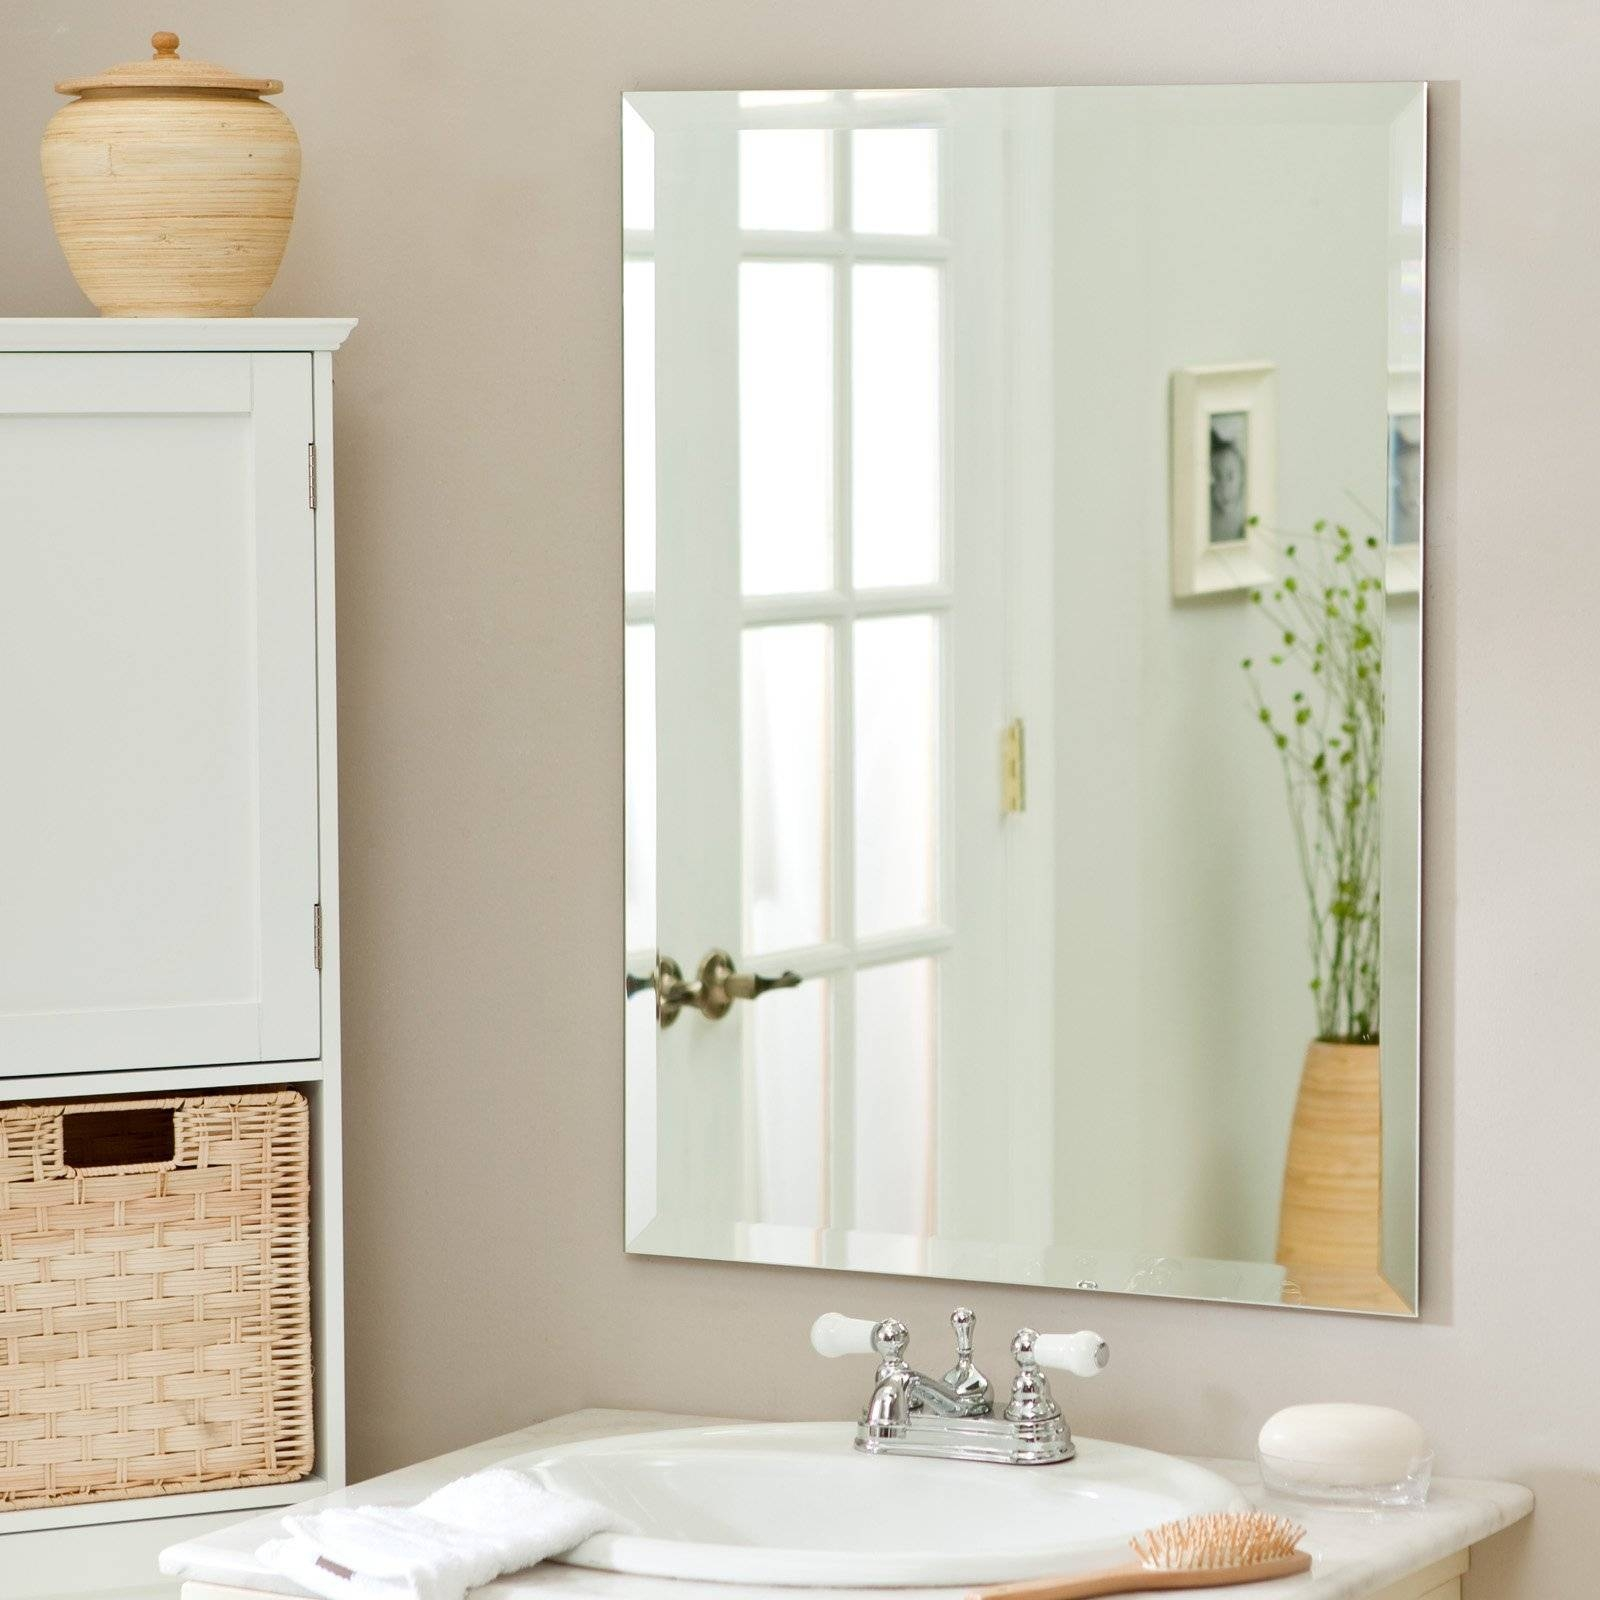 Uttermost Frameless Oval Beveled Vanity Mirror | Hayneedle throughout No Frame Wall Mirrors (Image 15 of 25)